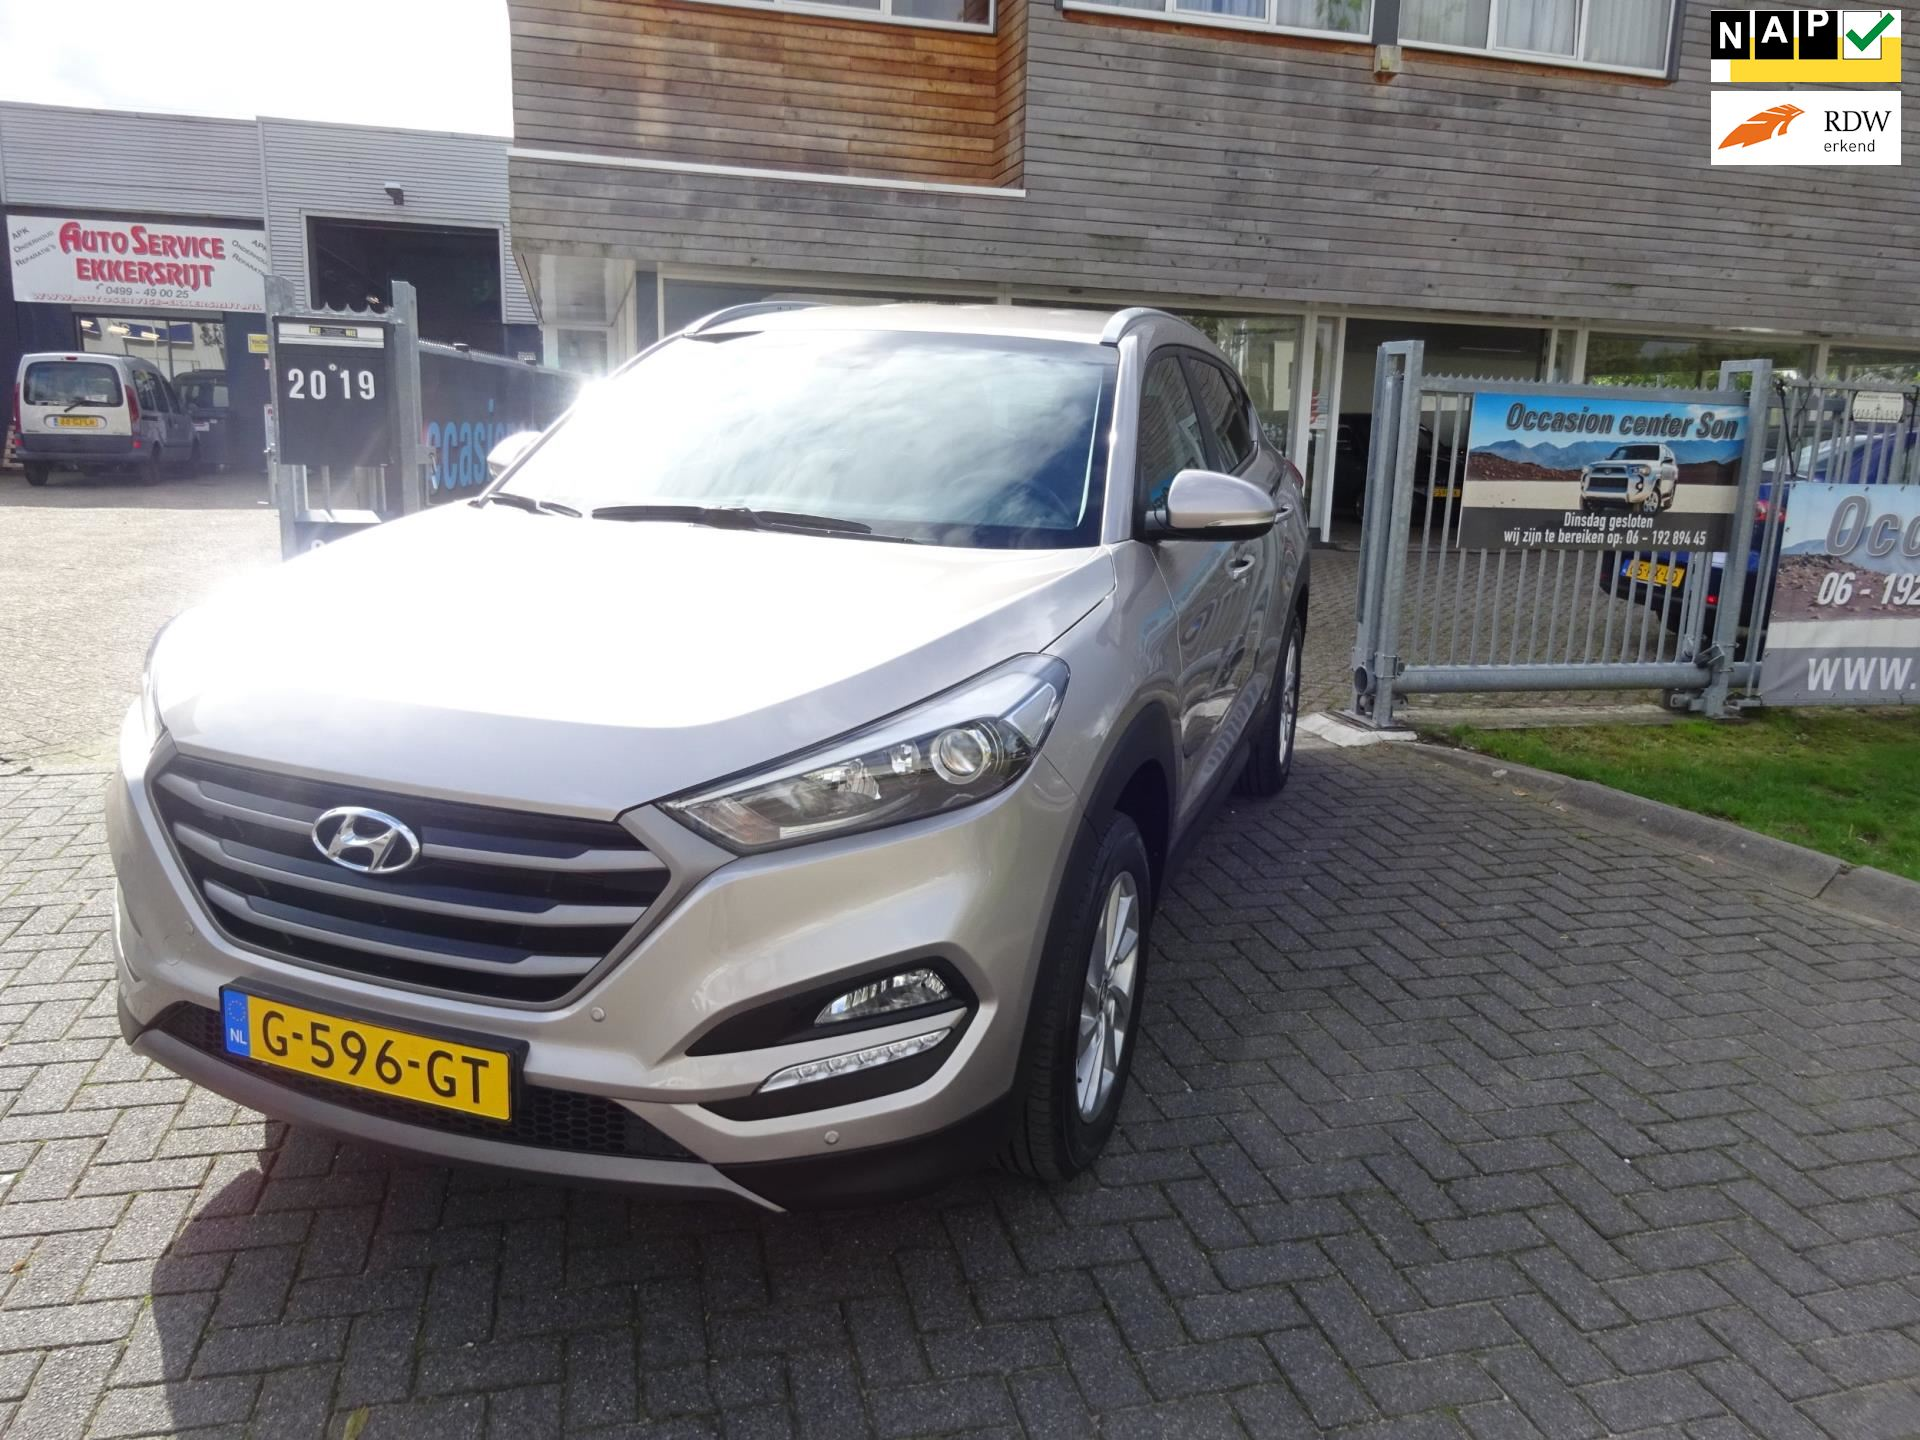 Hyundai Tucson occasion - Occasion Center Son B.V.